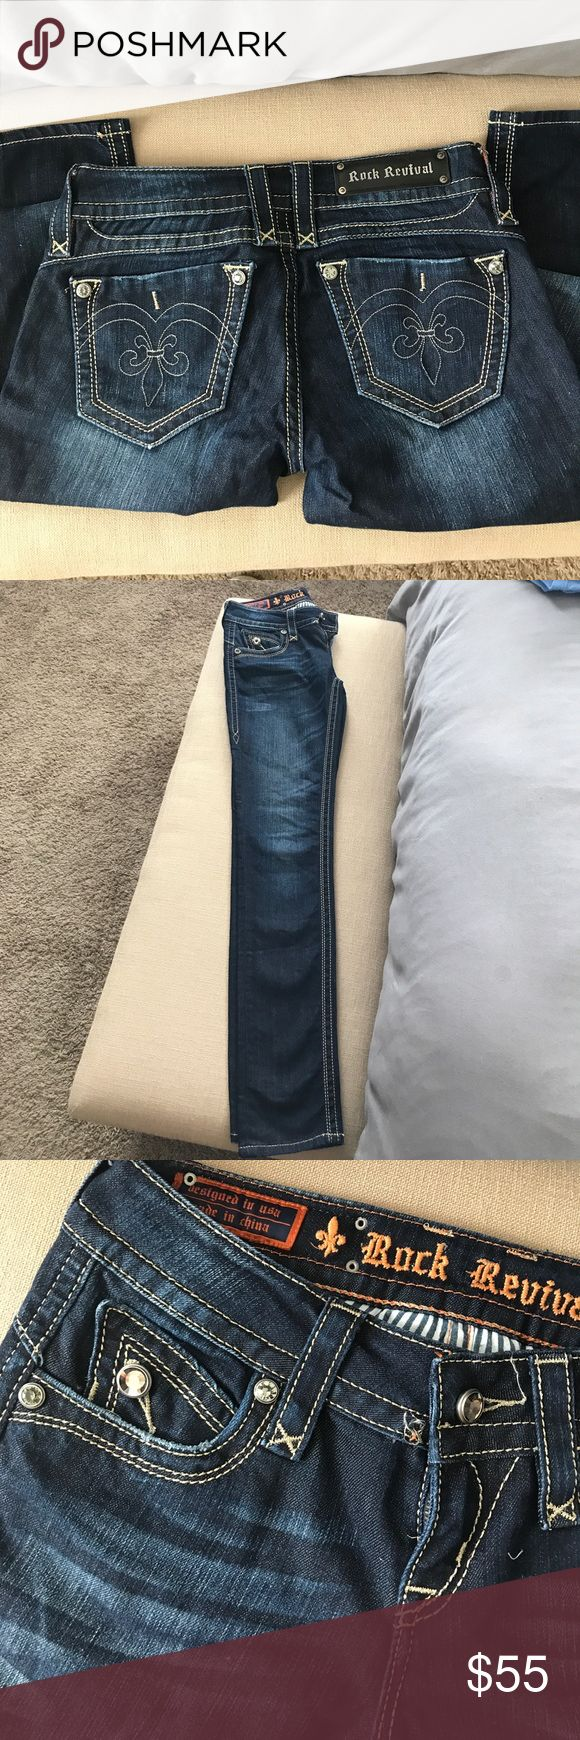 Rock Revival Skinny Jeans - perfect condition Perfect condition. No holes or stains. All of the buttons are attached. Zipper works perfect. They are size 27 and the Adele Skinny Rock Revival Jeans Skinny